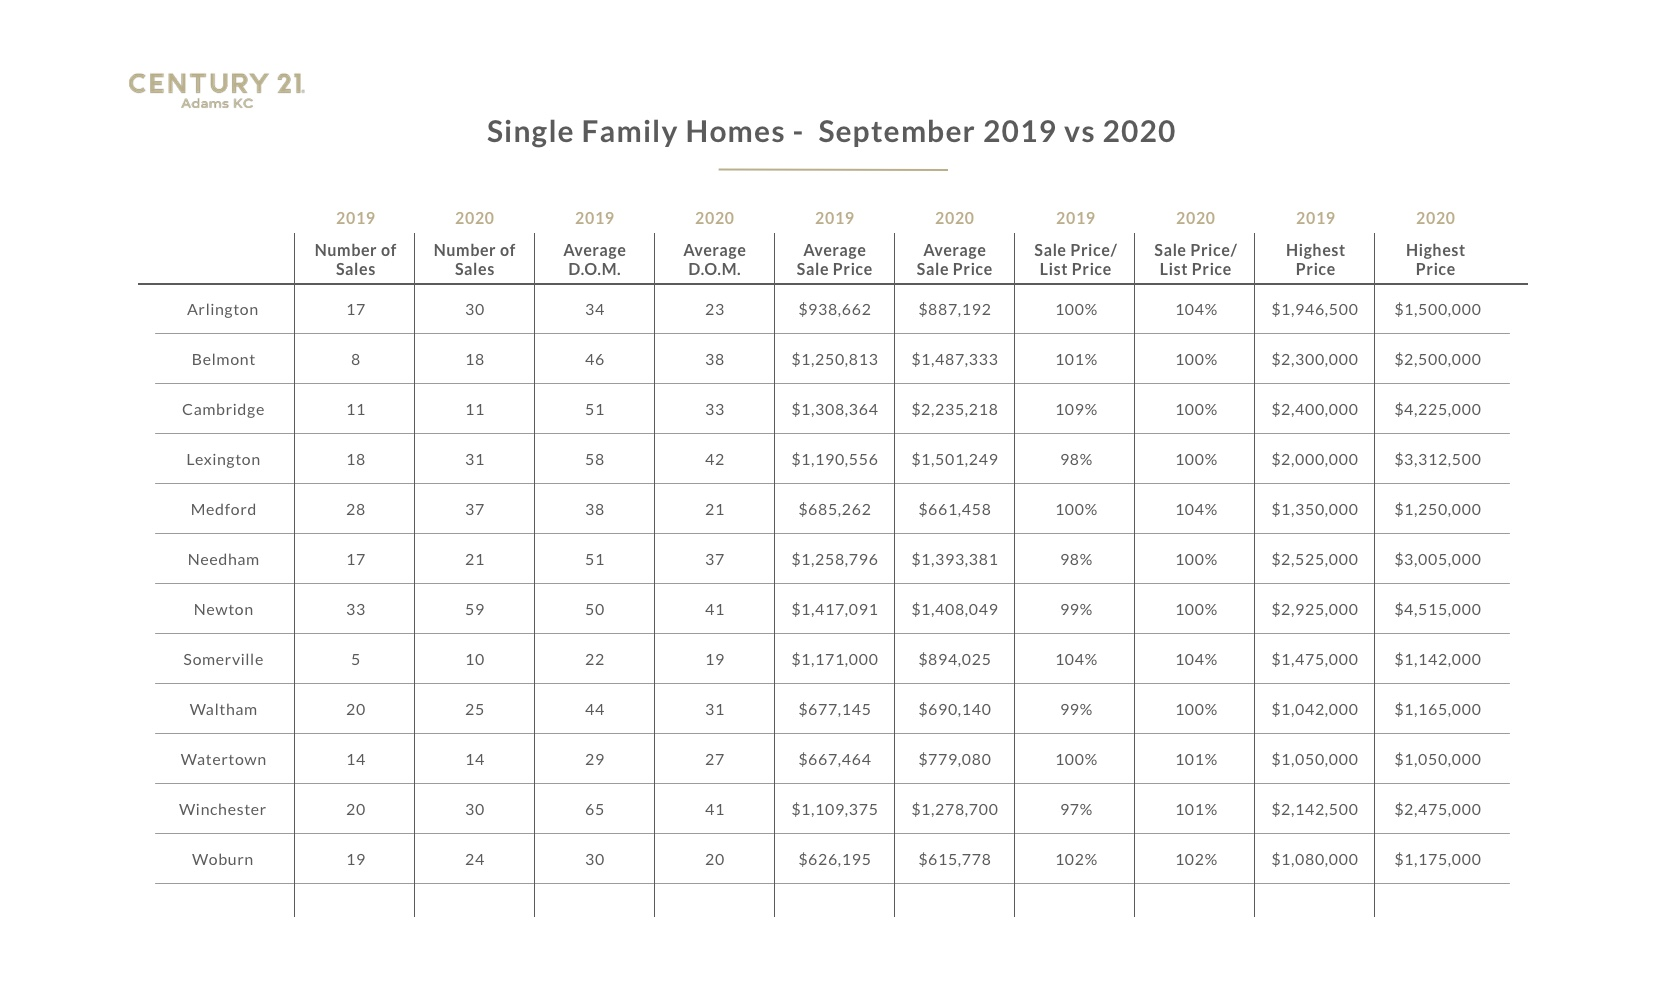 A chart with data from the 2020 Greater Boston real estate market report- single family homes: September 2020